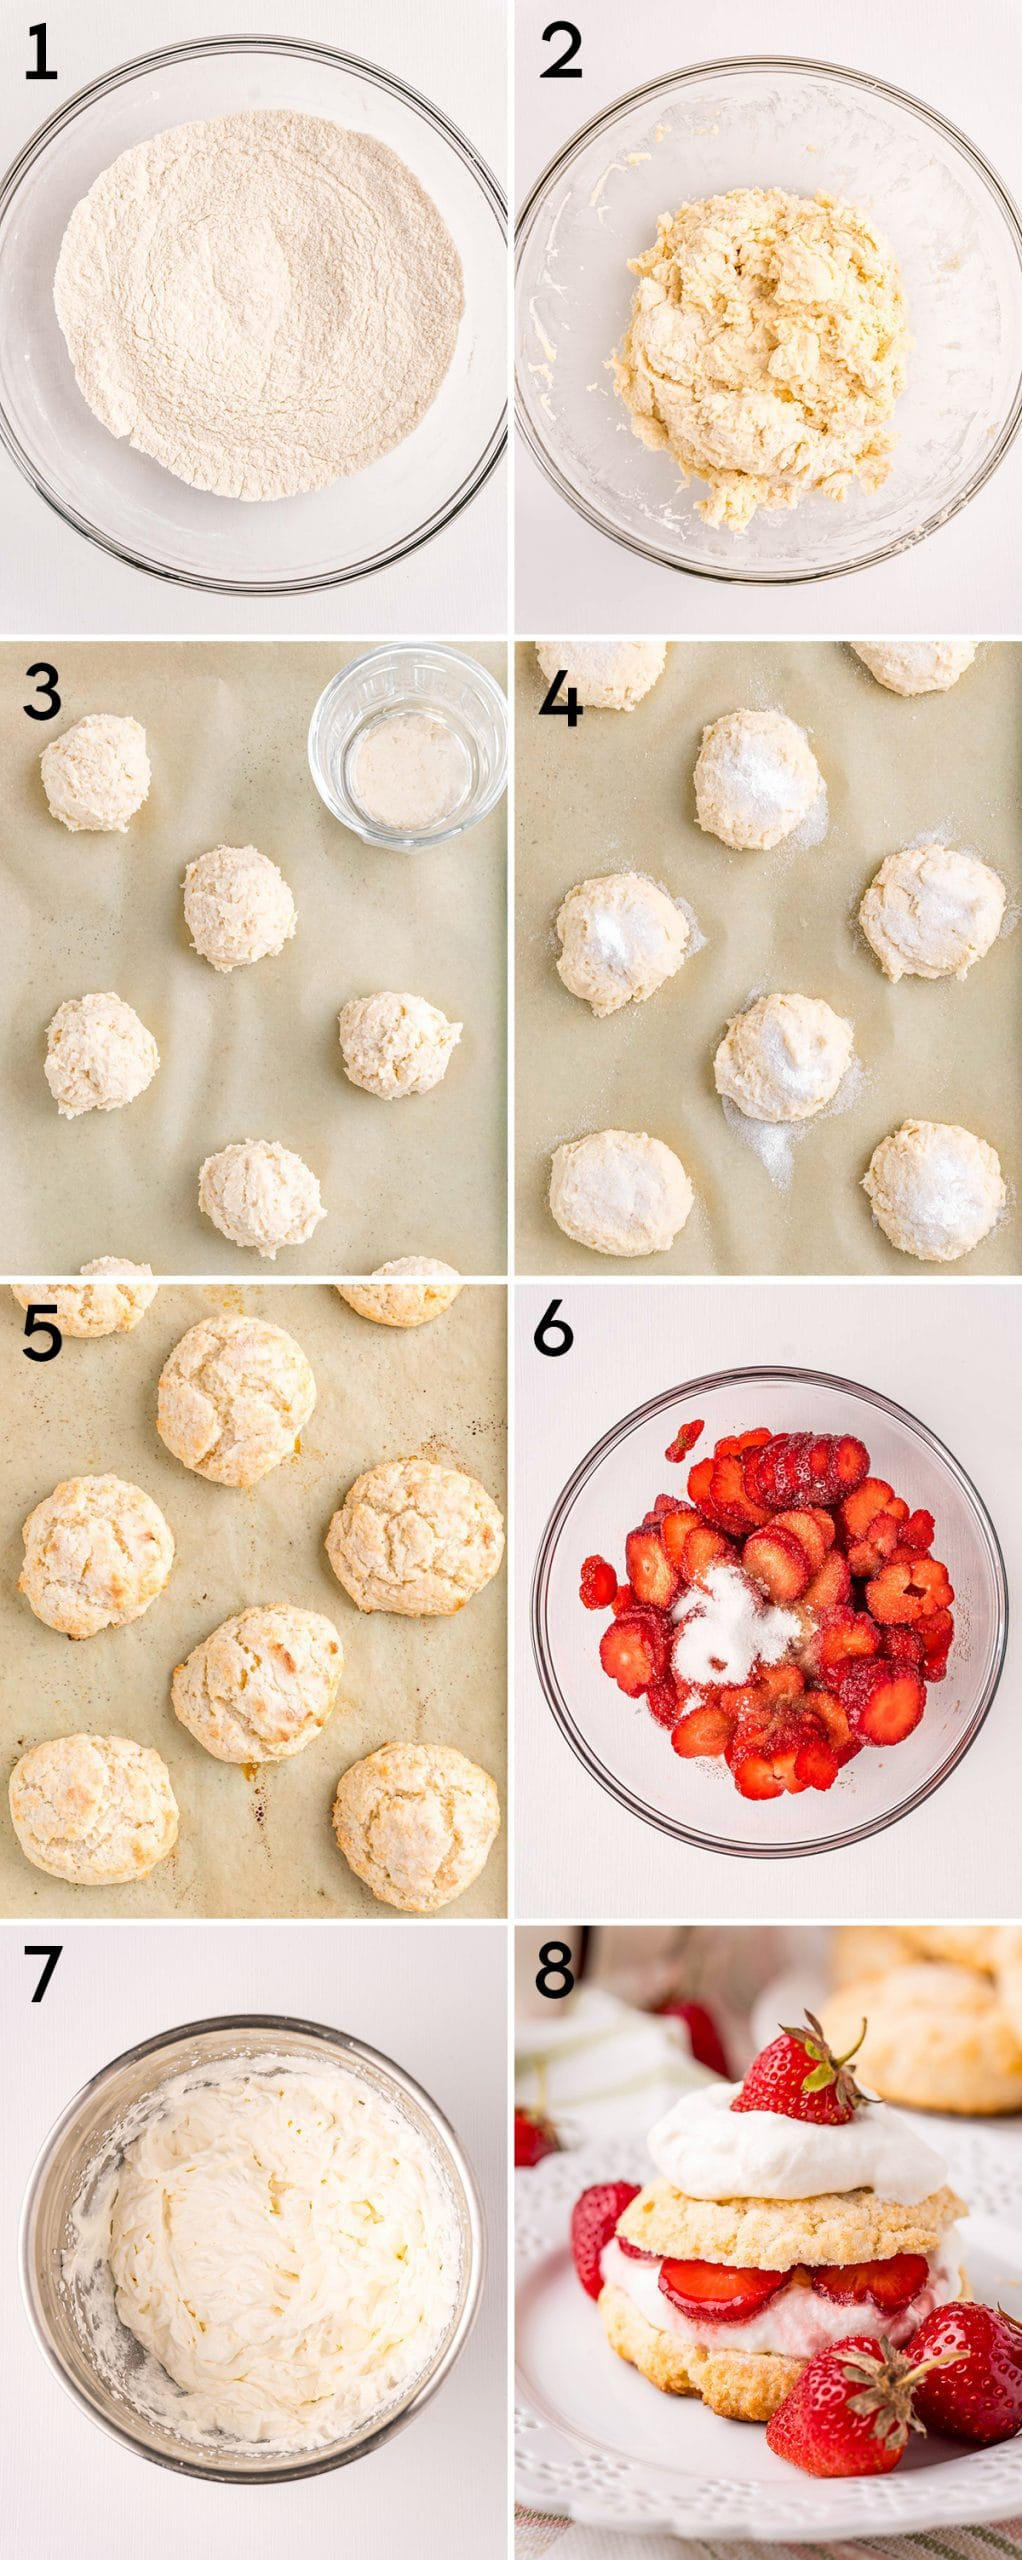 A collage of 8 step by step photos showing how to make strawberry shortcakes.